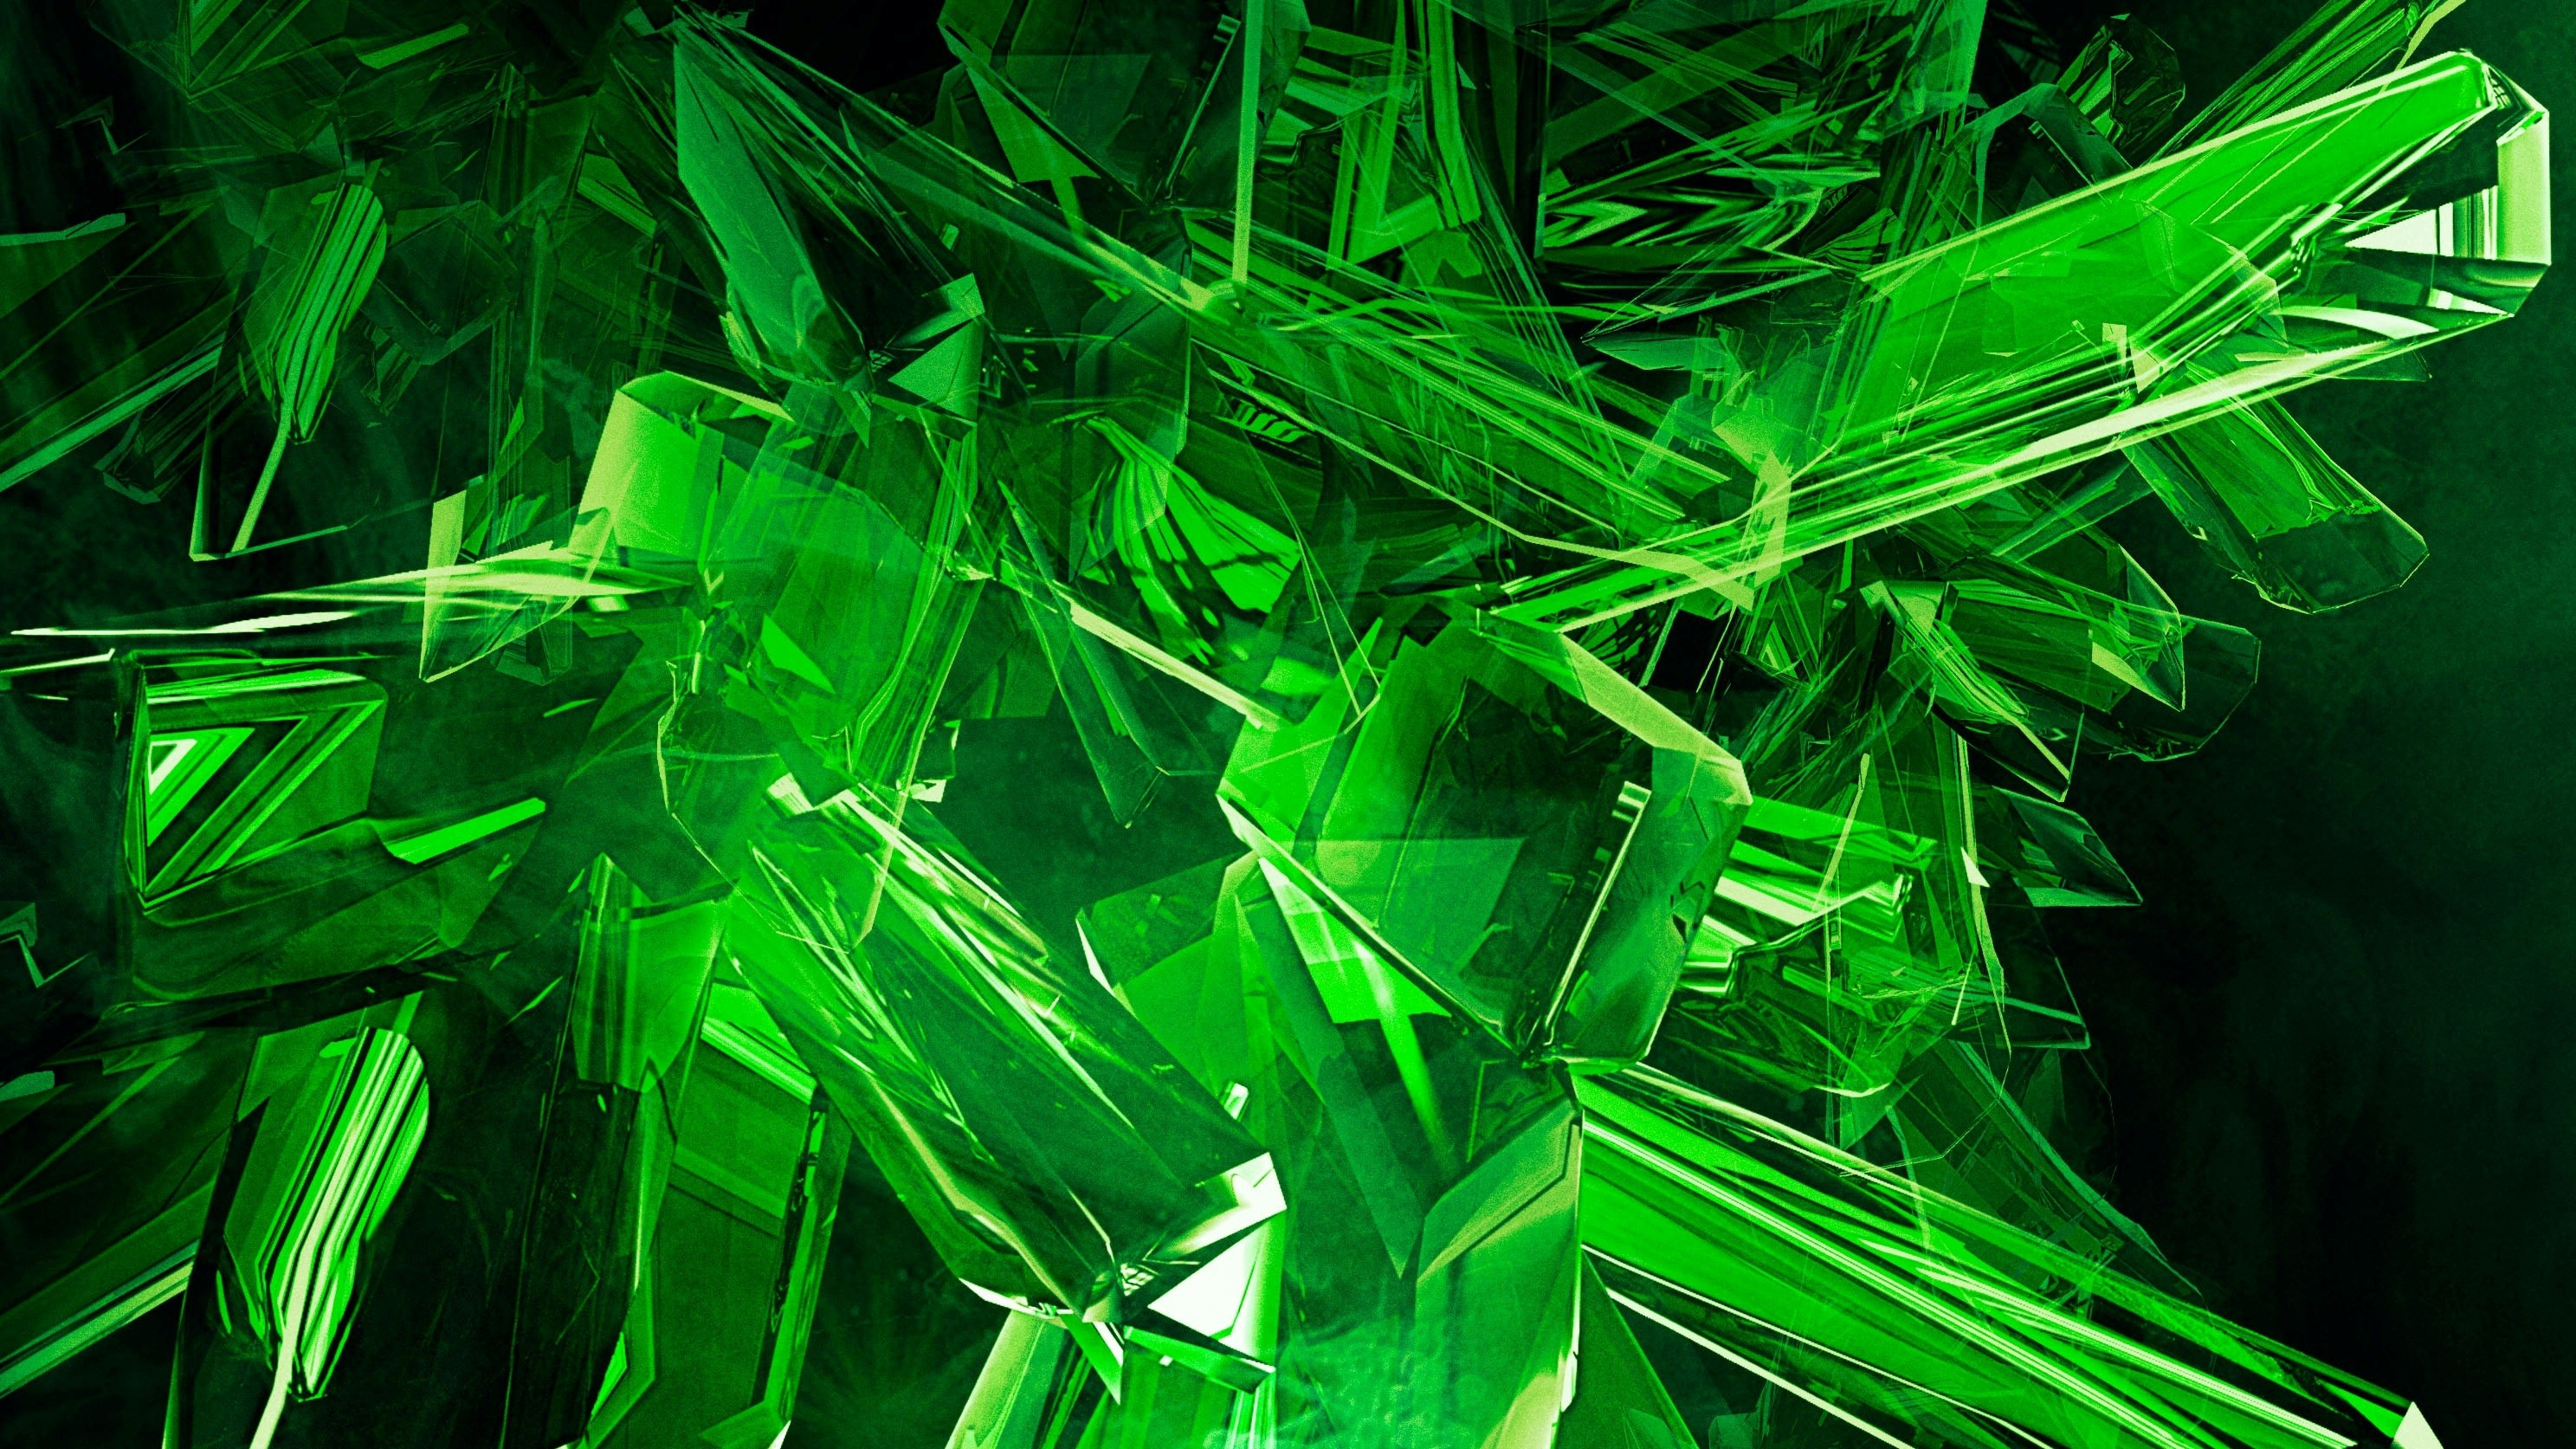 2975x1673 cool desktop hd wallpaper 14591 Image Green View Abstract Gems Cool HD .